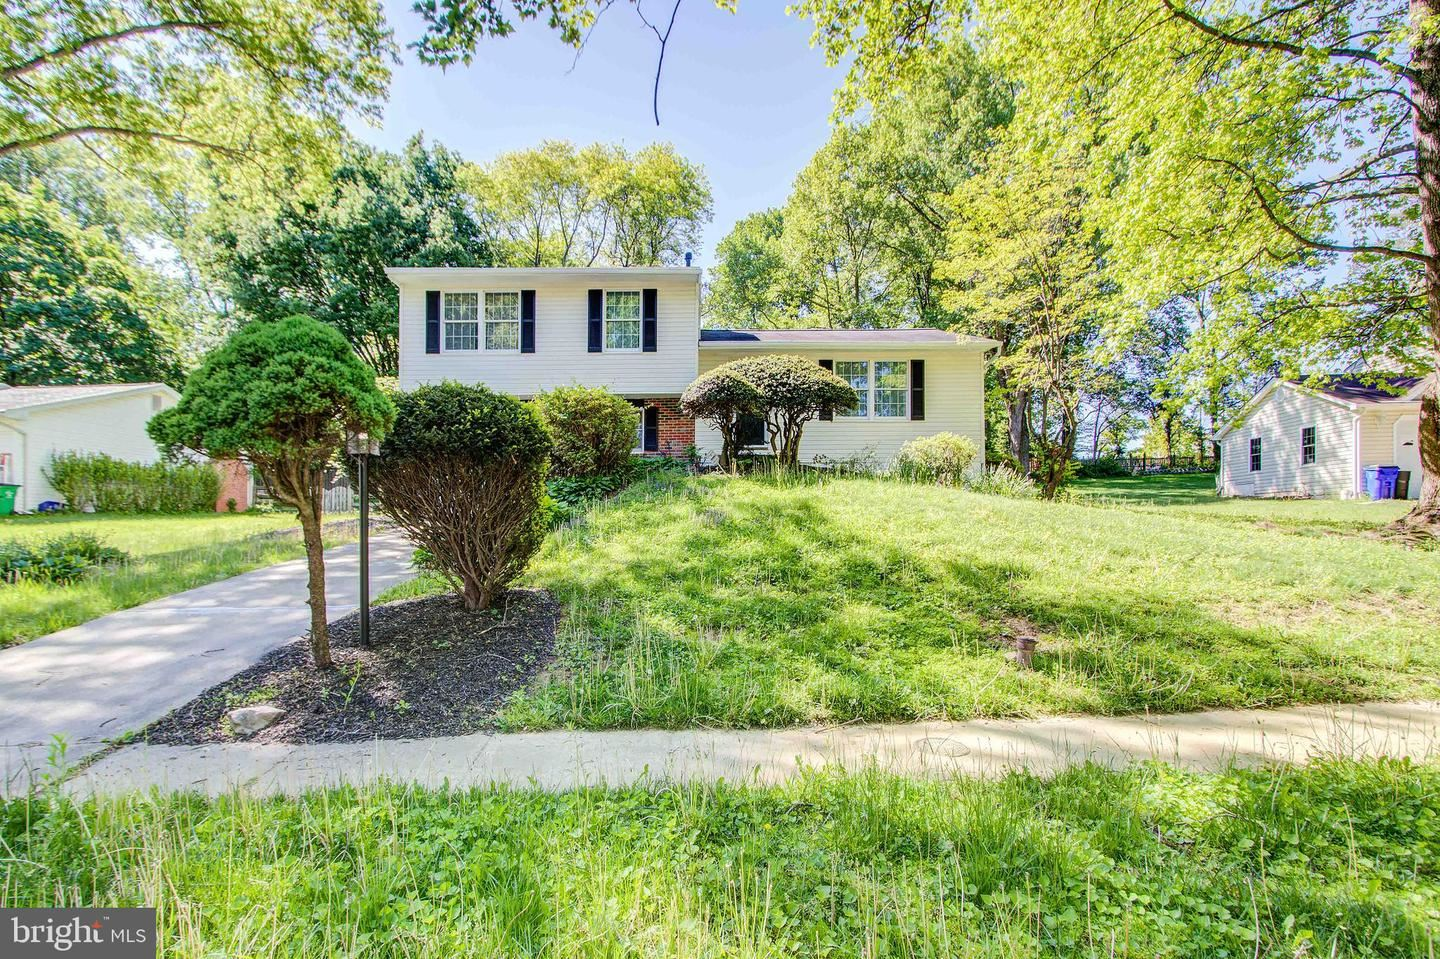 6118 CAMELBACK LN, Columbia, MD 21045 - MLS#: MDHW294560